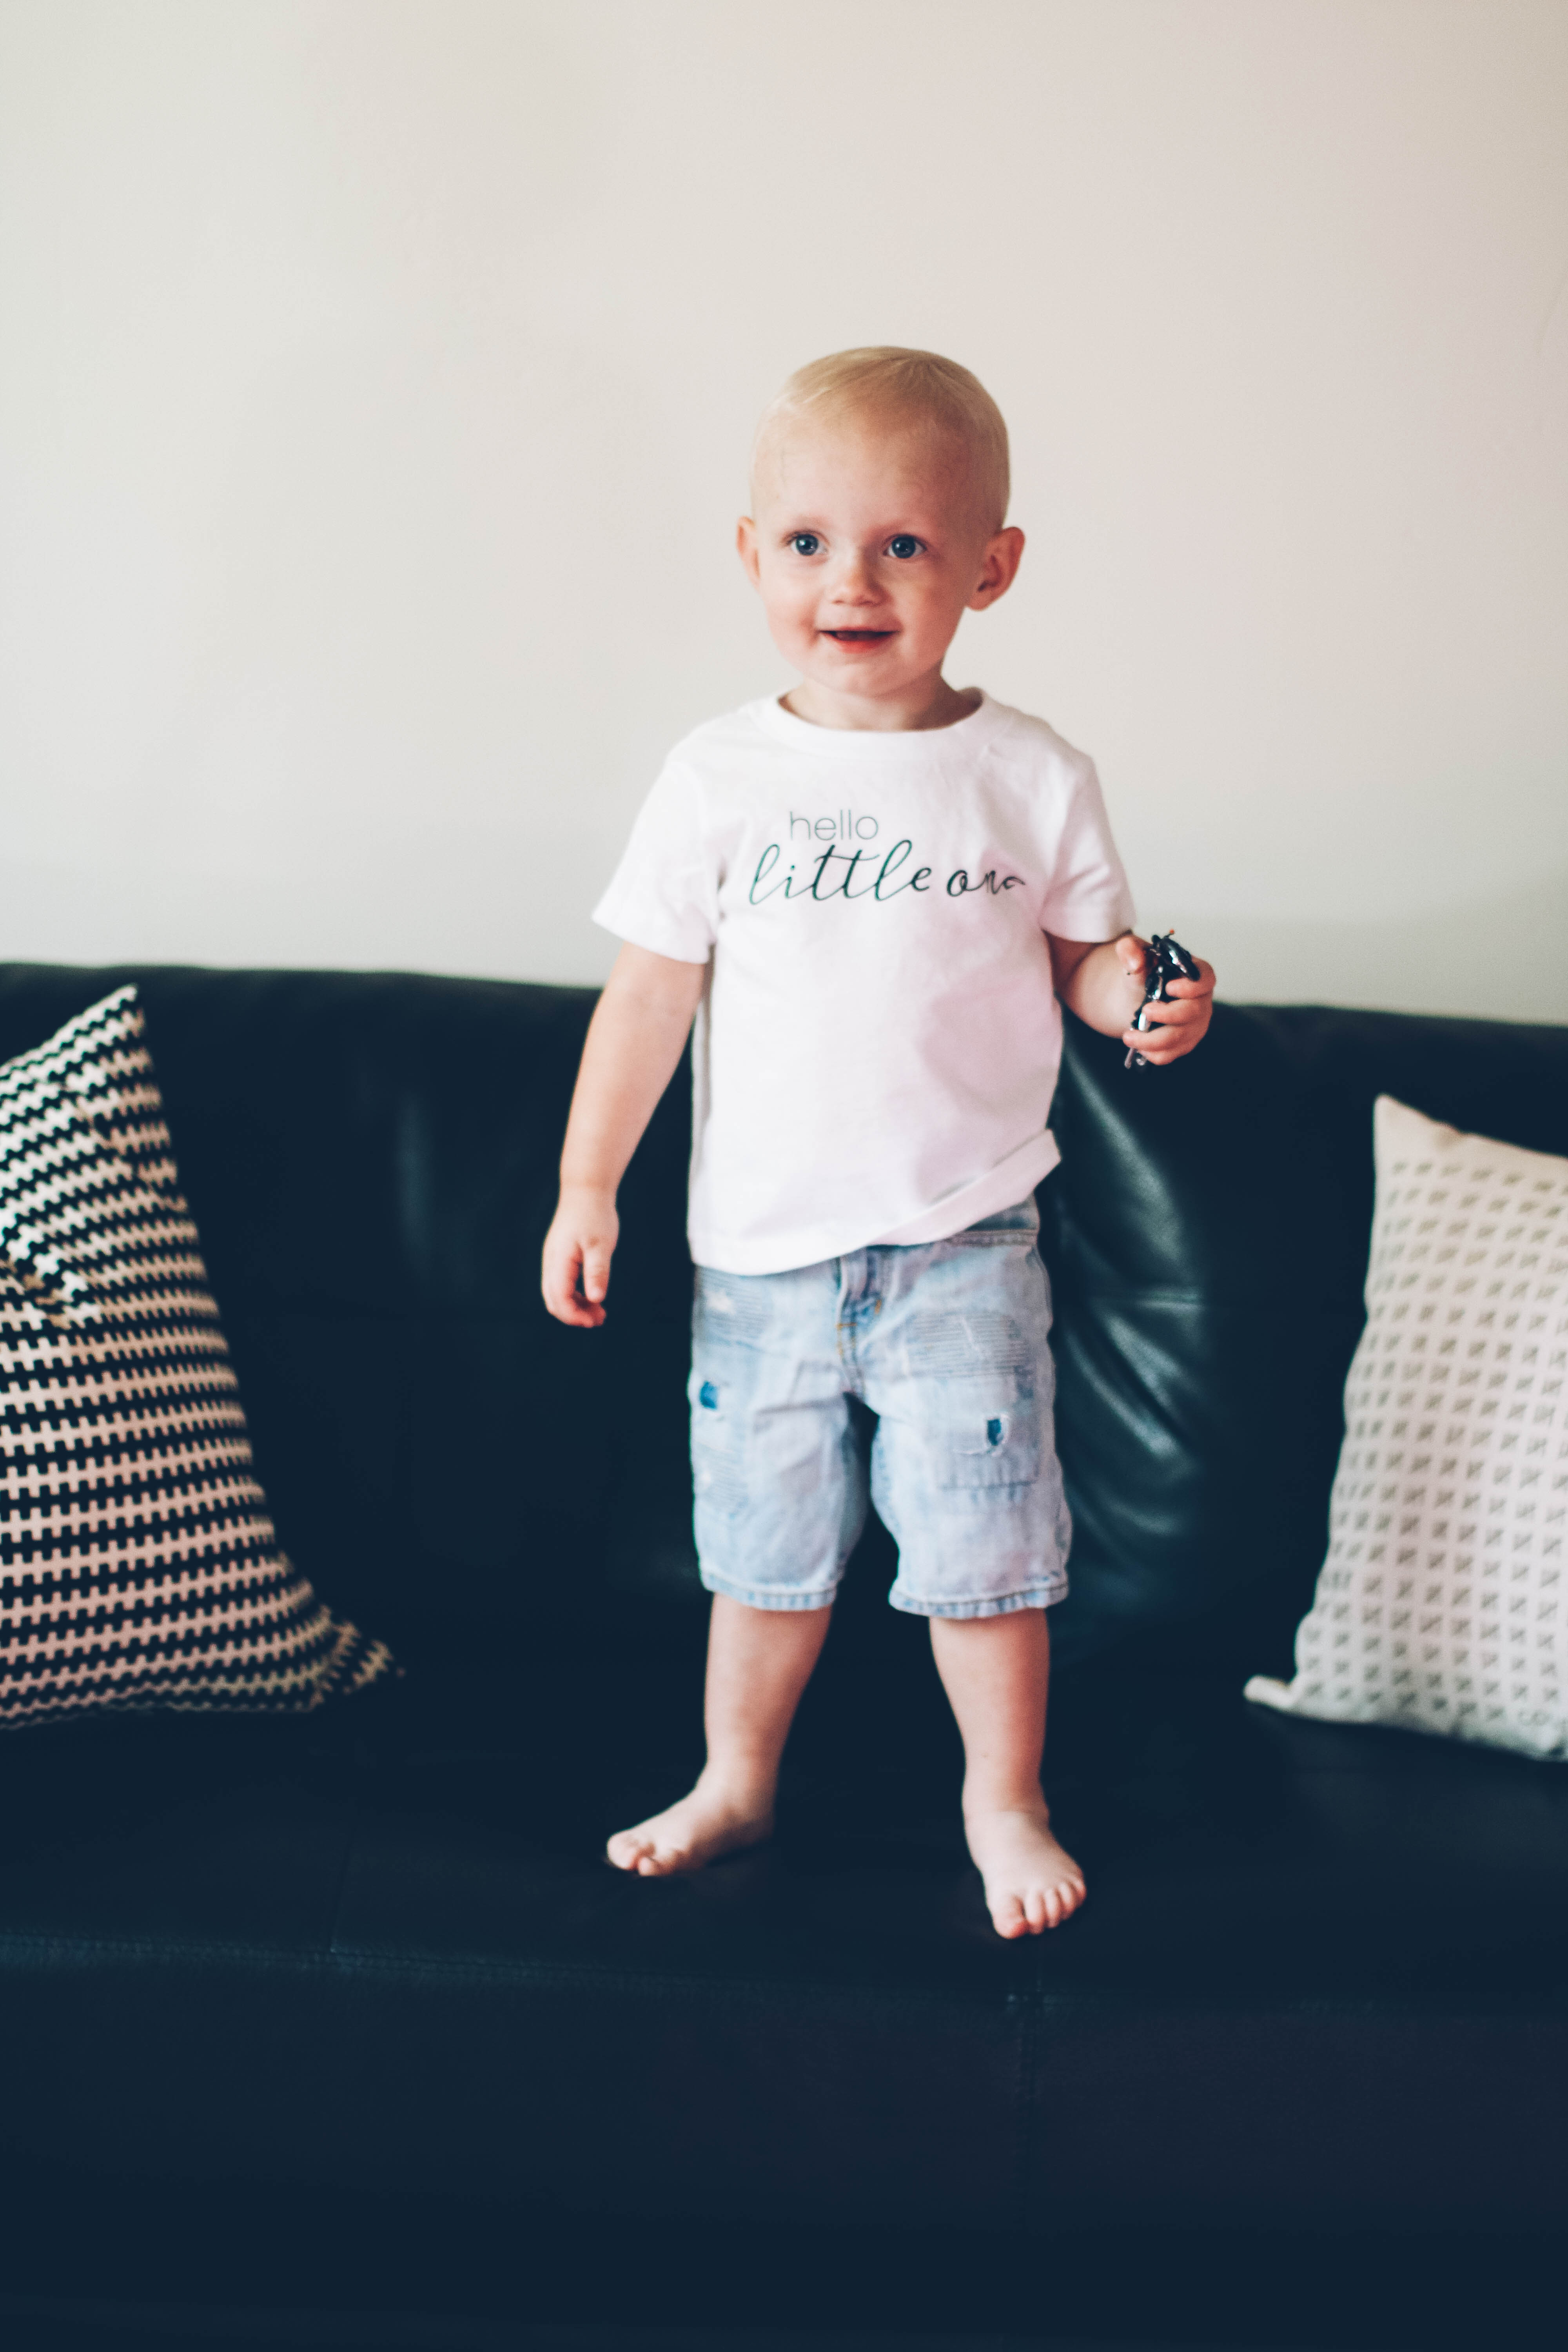 little blonde boy in hello little one white basic tee standing on modern black couch in cutoff shorts